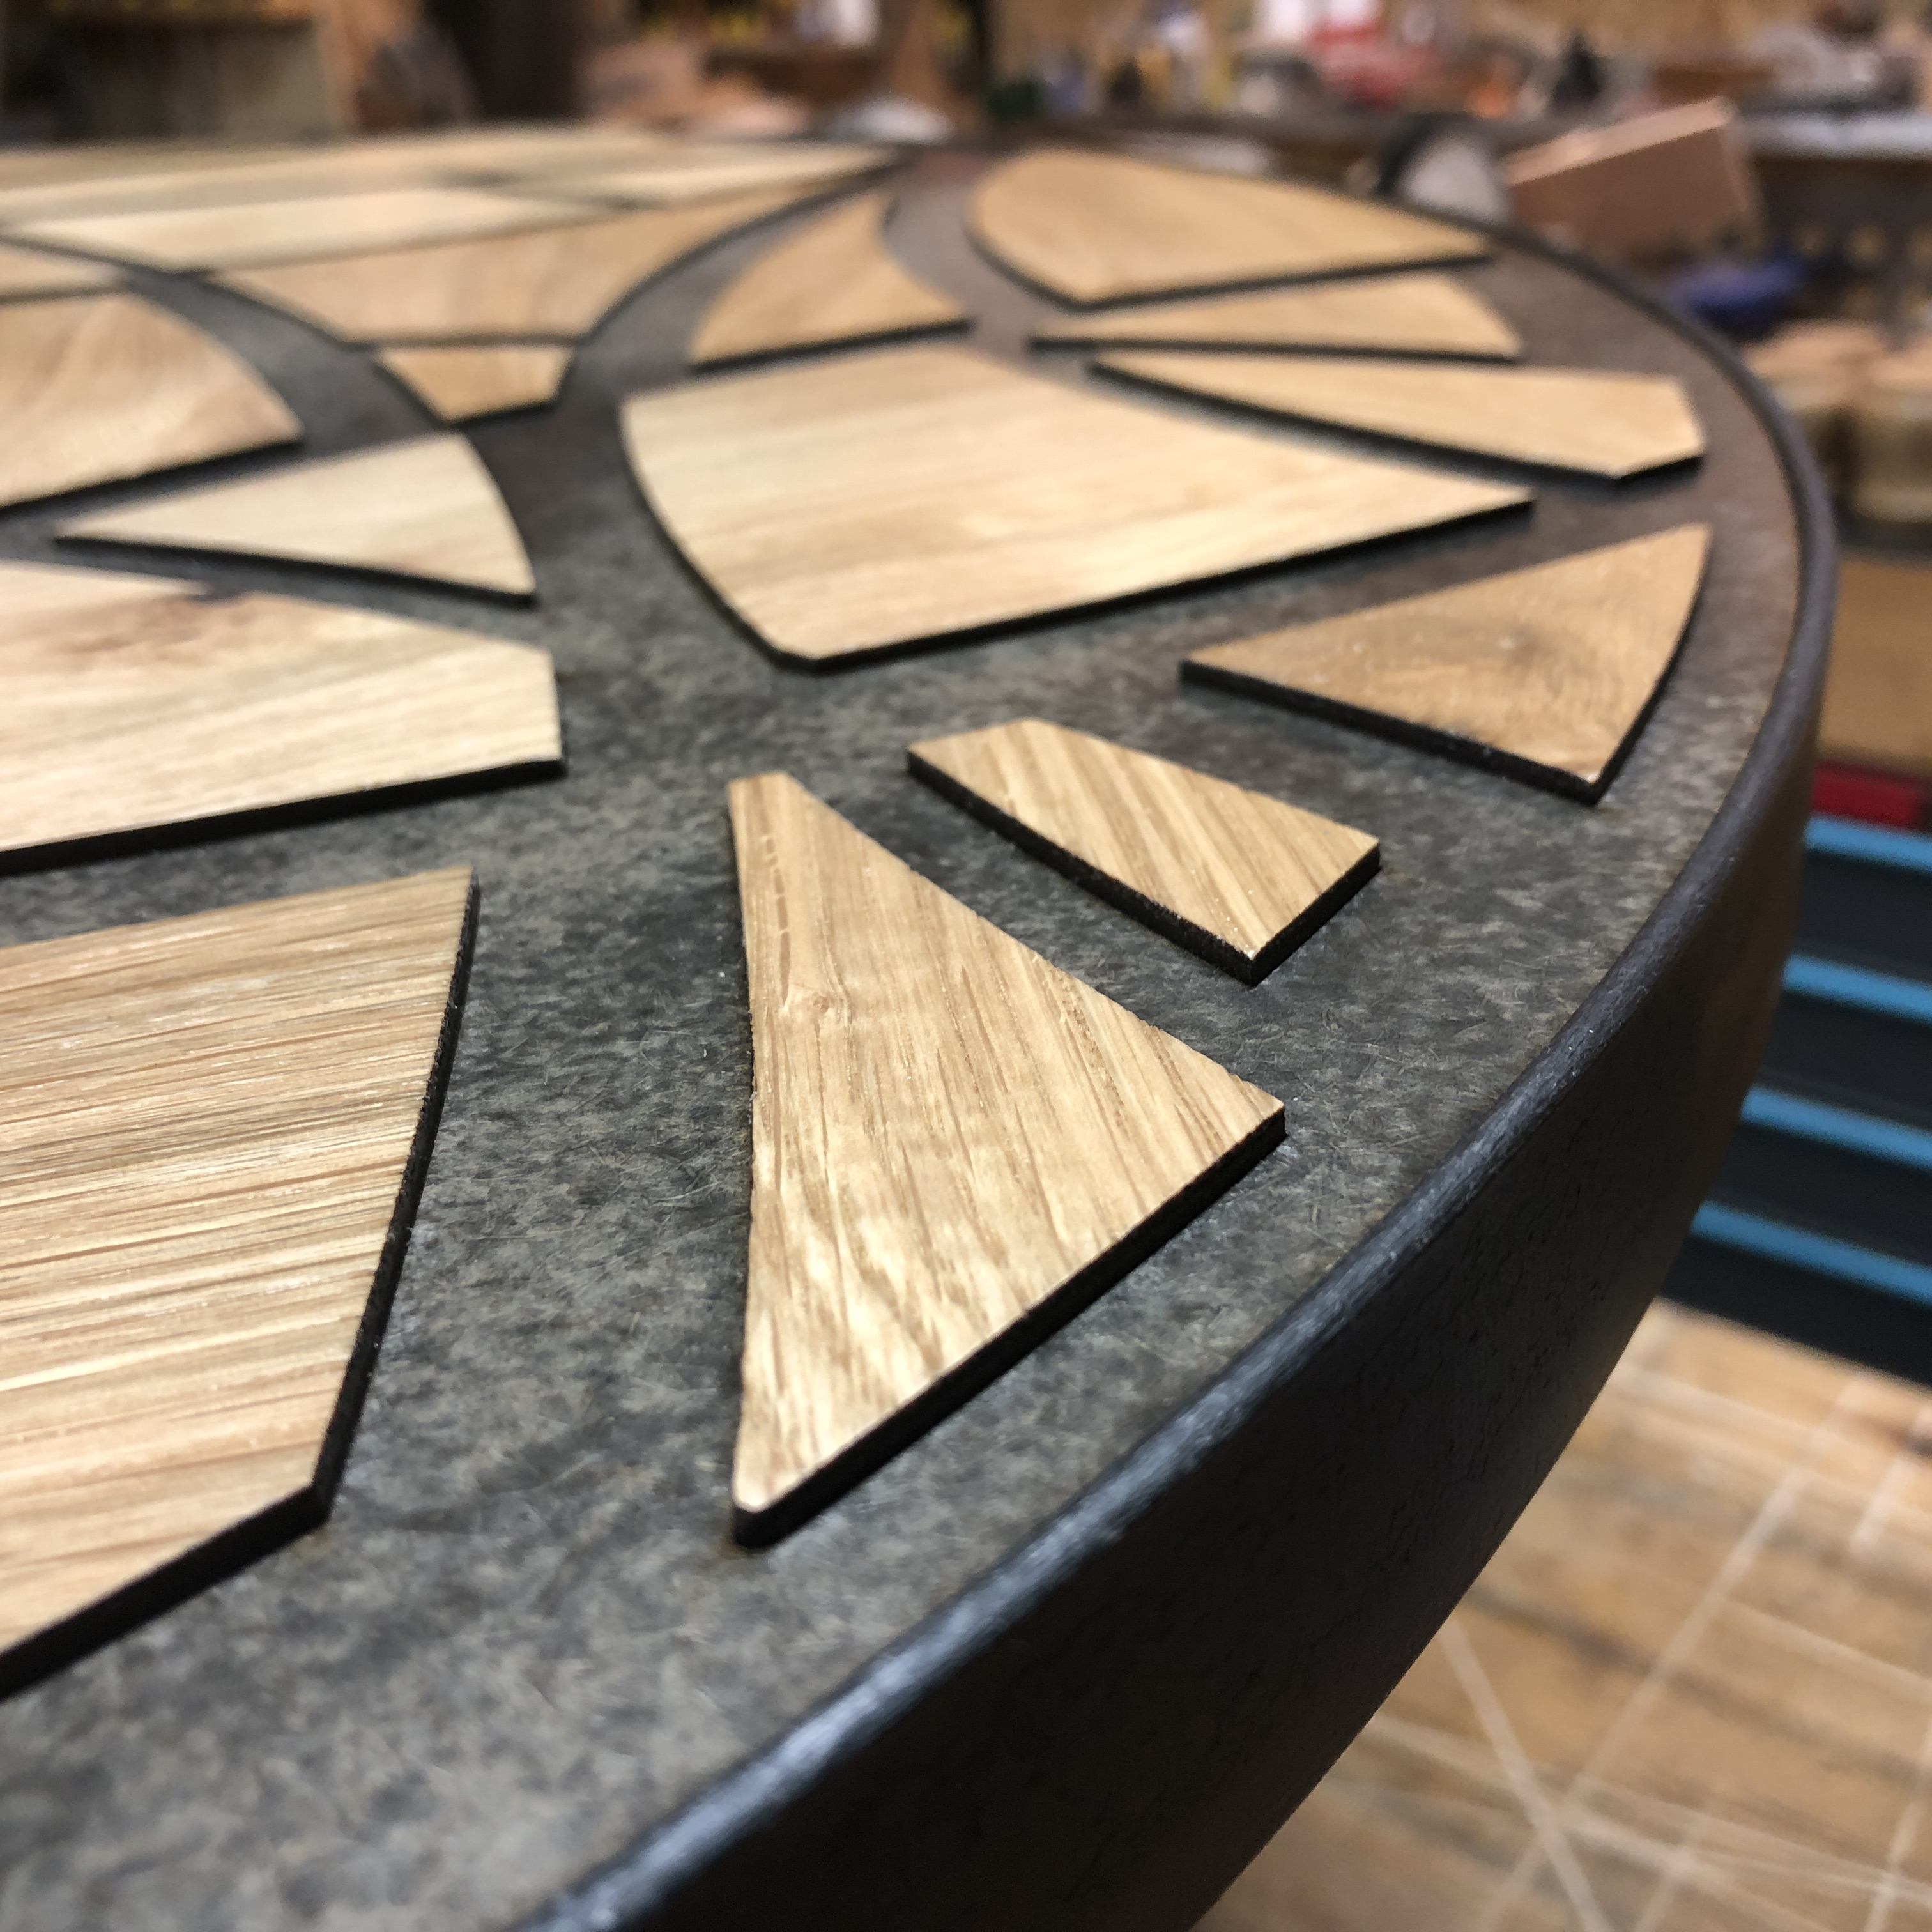 Round fretwork table detail by Brendan O'Donnell Design